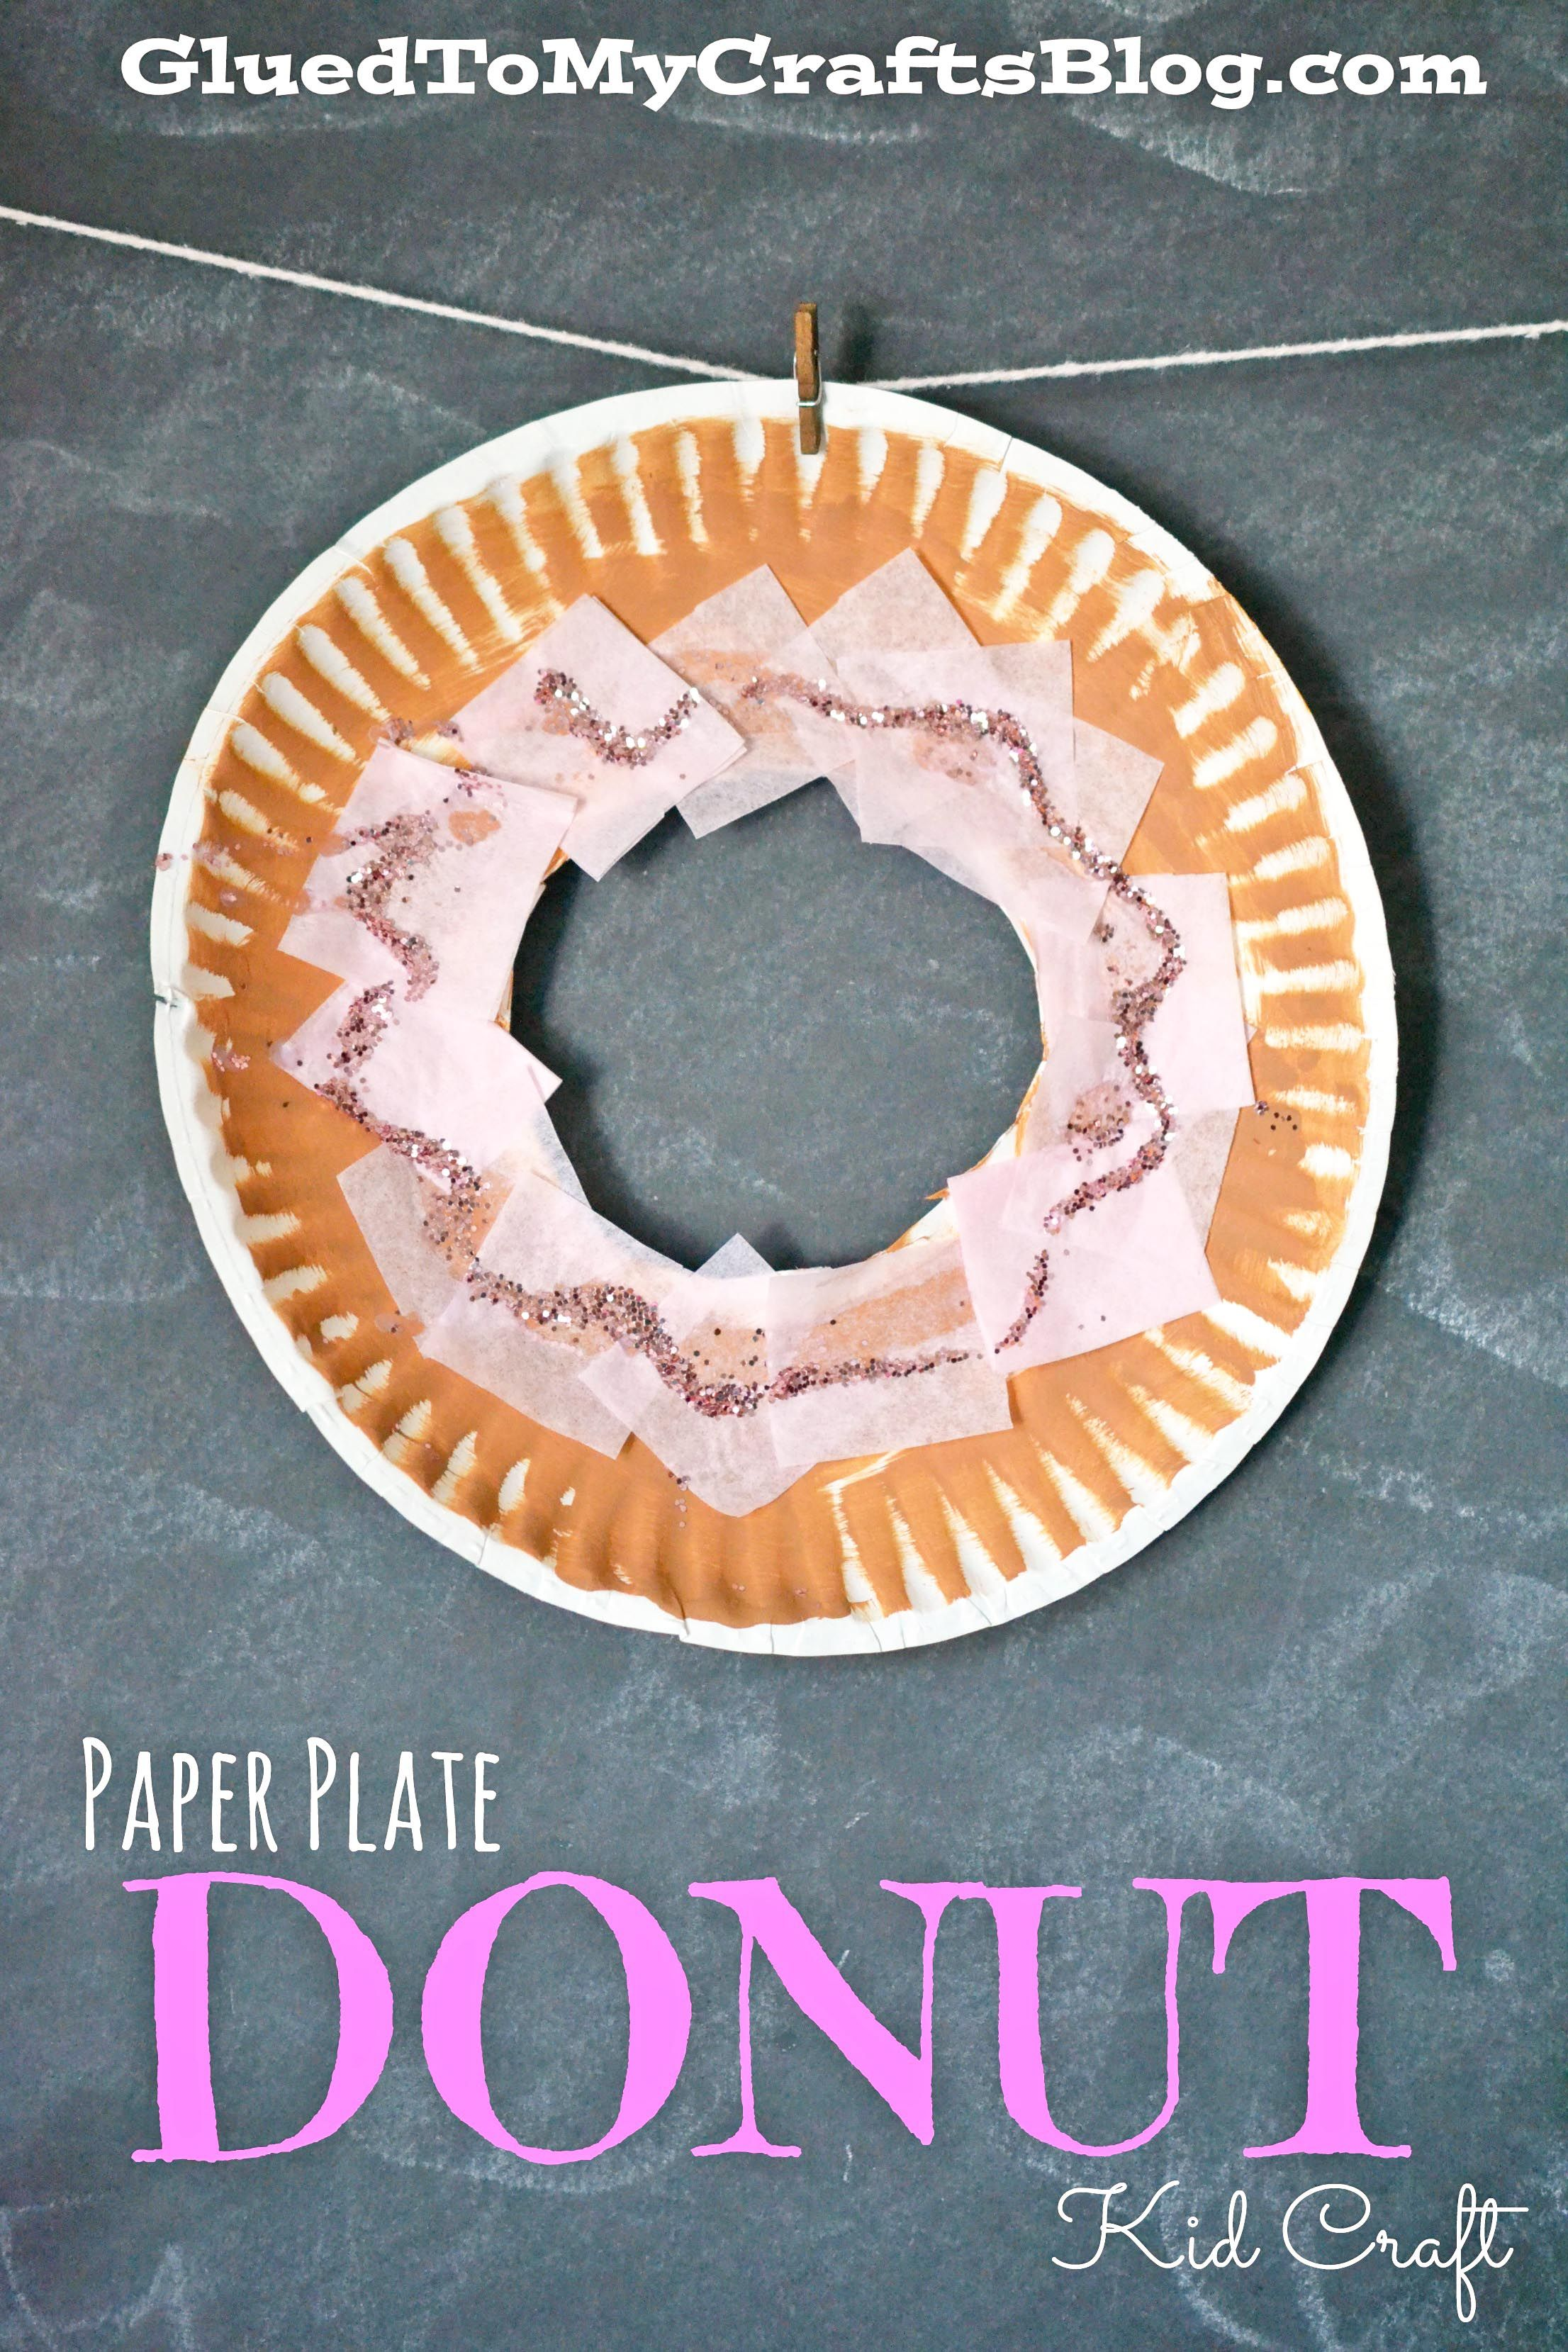 Paper Plate Donut Kid Craft & Paper Plate Donut Kid Craft | Doughnut Crafts and Activities